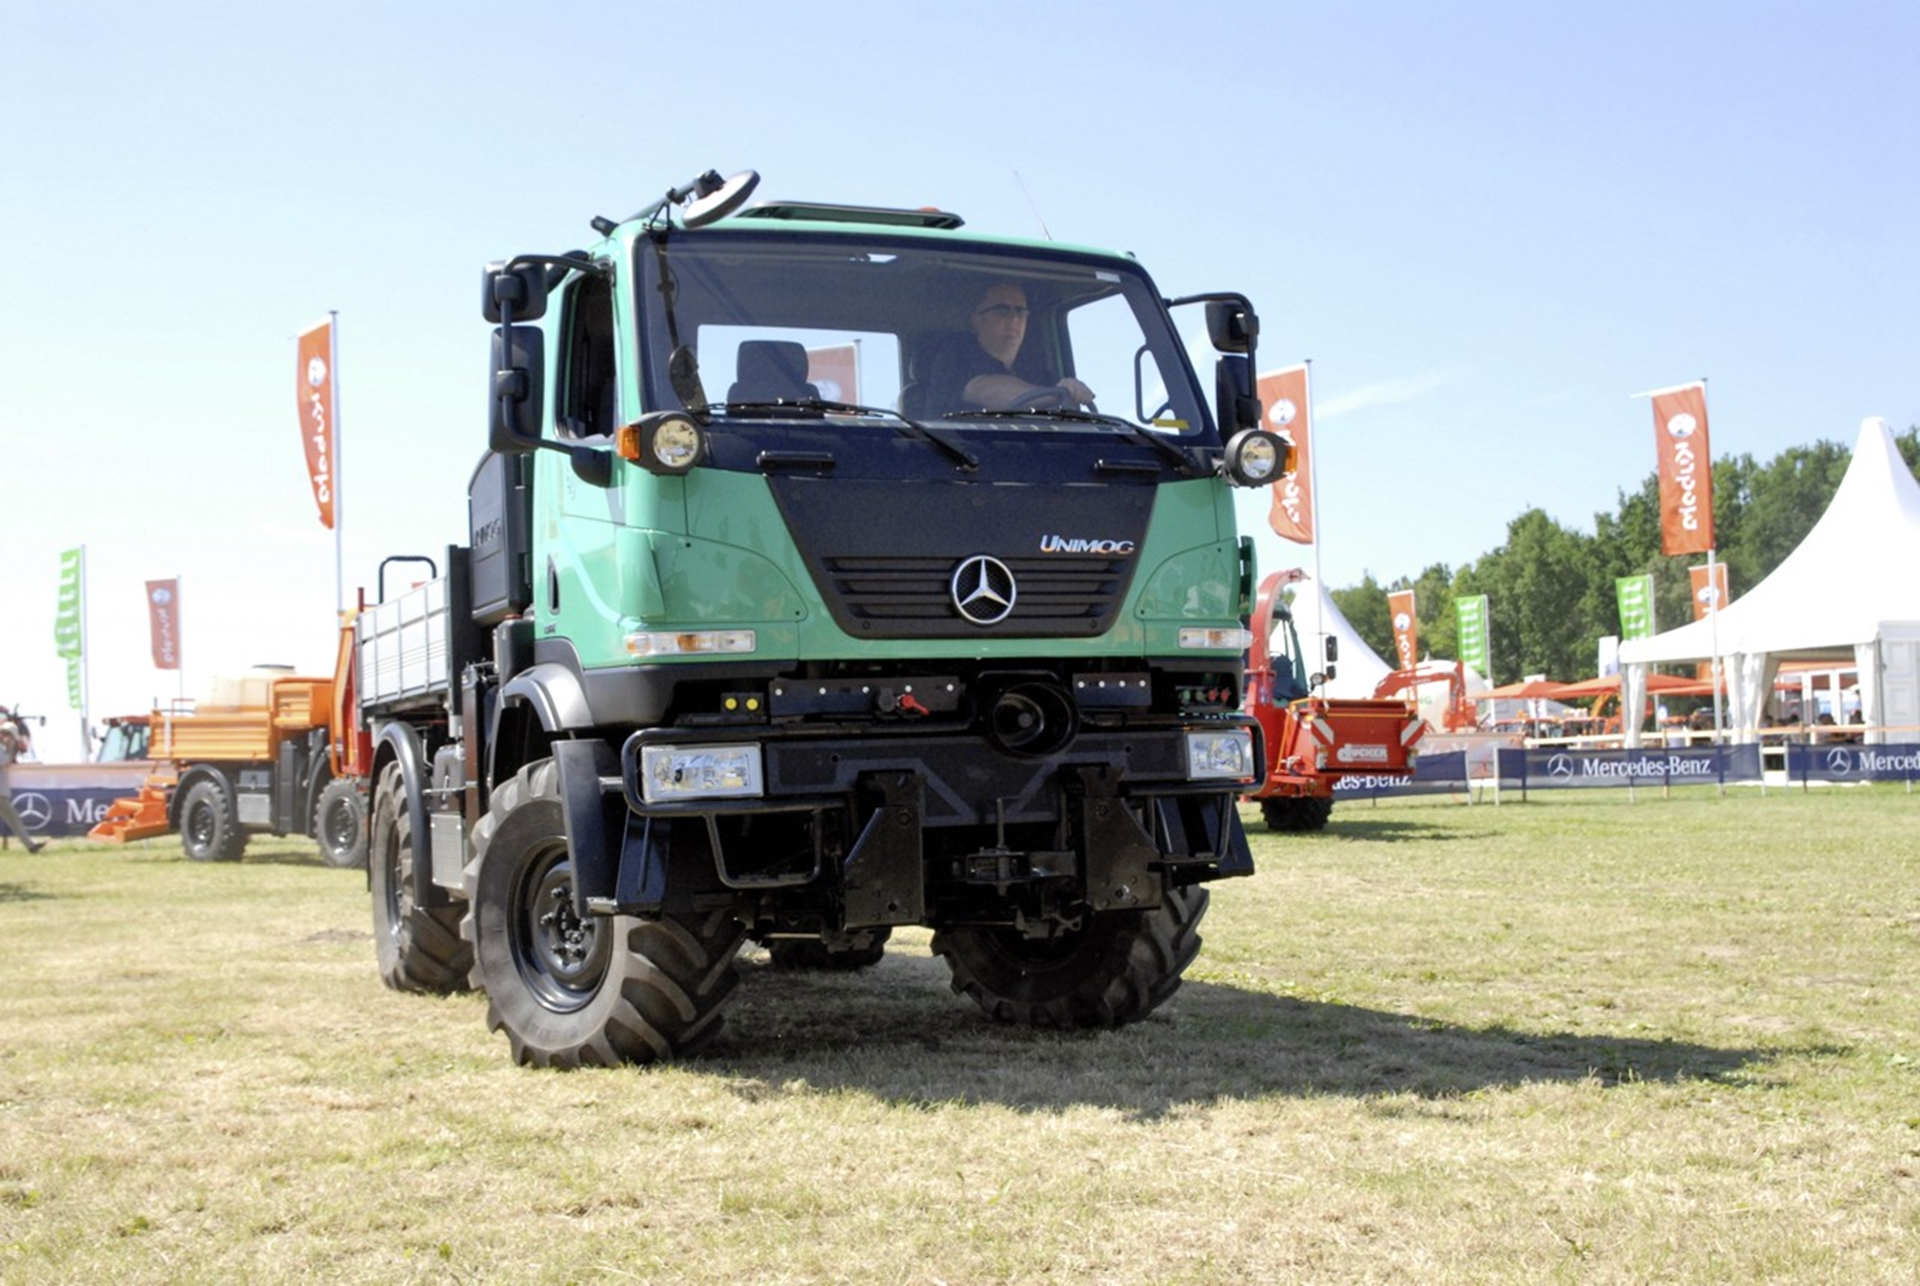 unimog iaa commercial vehicle show